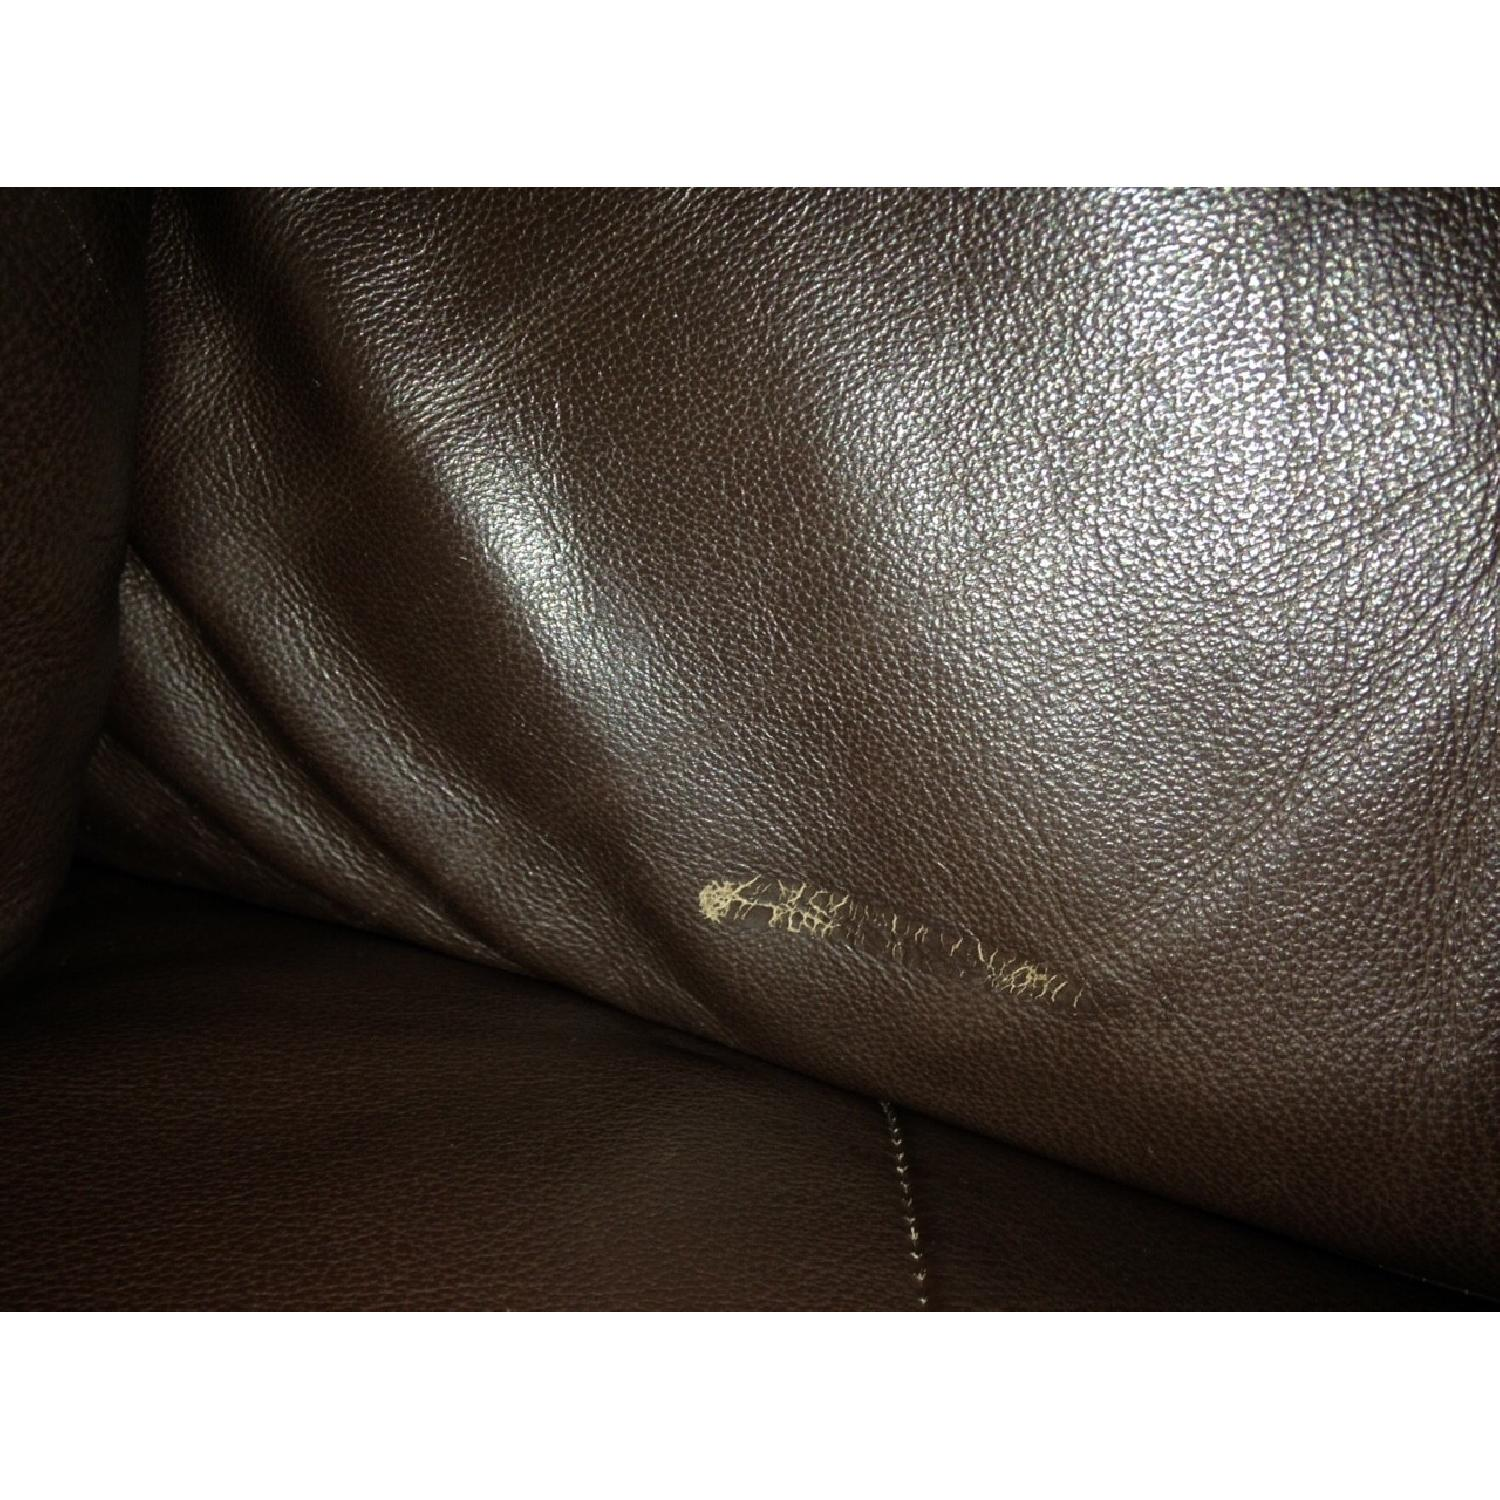 Ikea Leather Loveseat/Couch - image-2